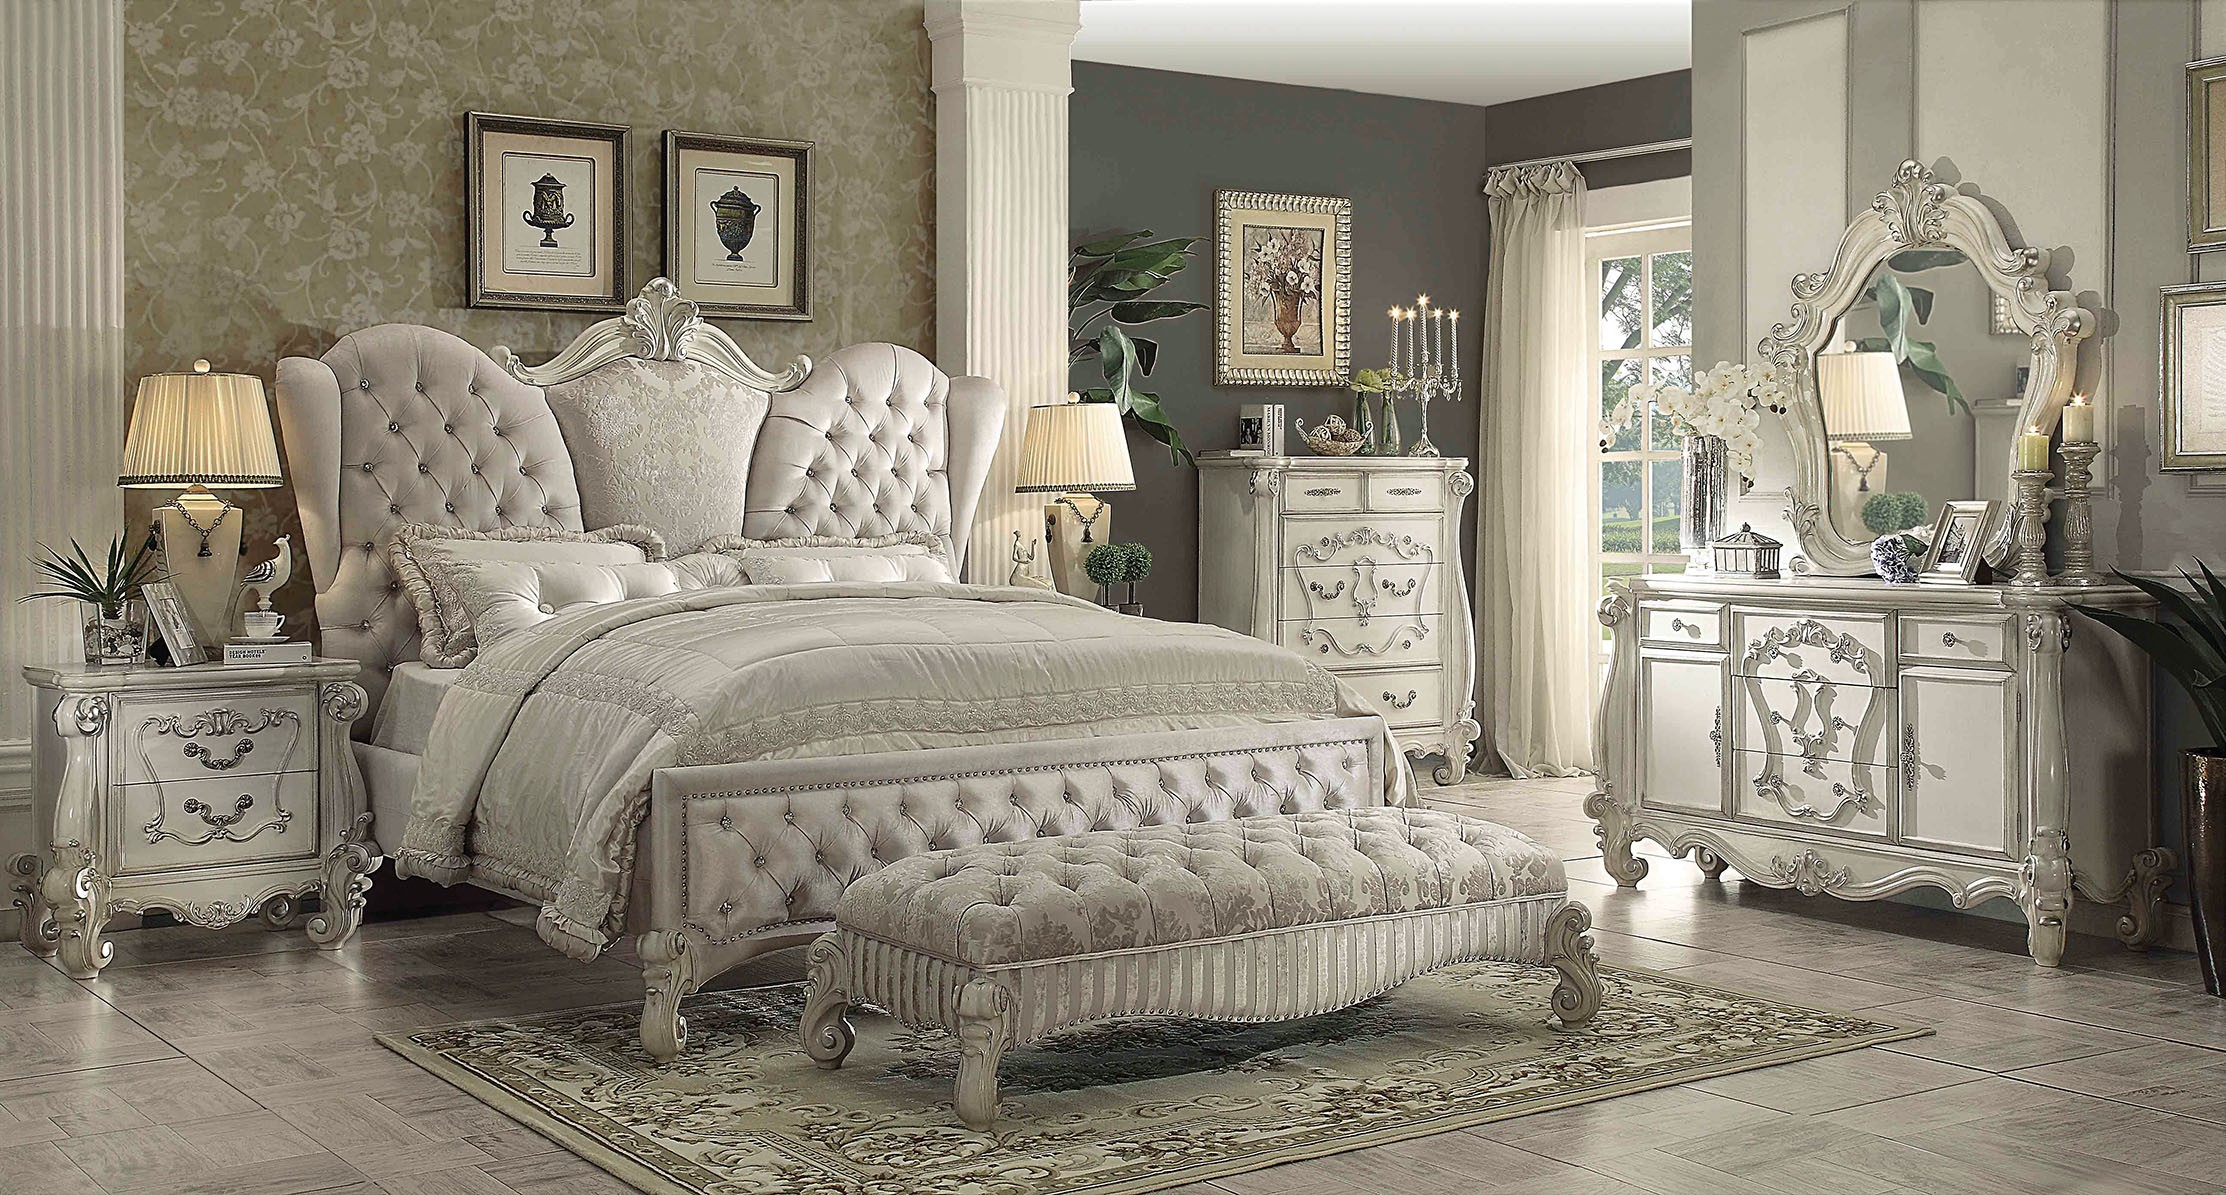 Versailles 3 Piece California King Size Bedroom Set, Composition 3